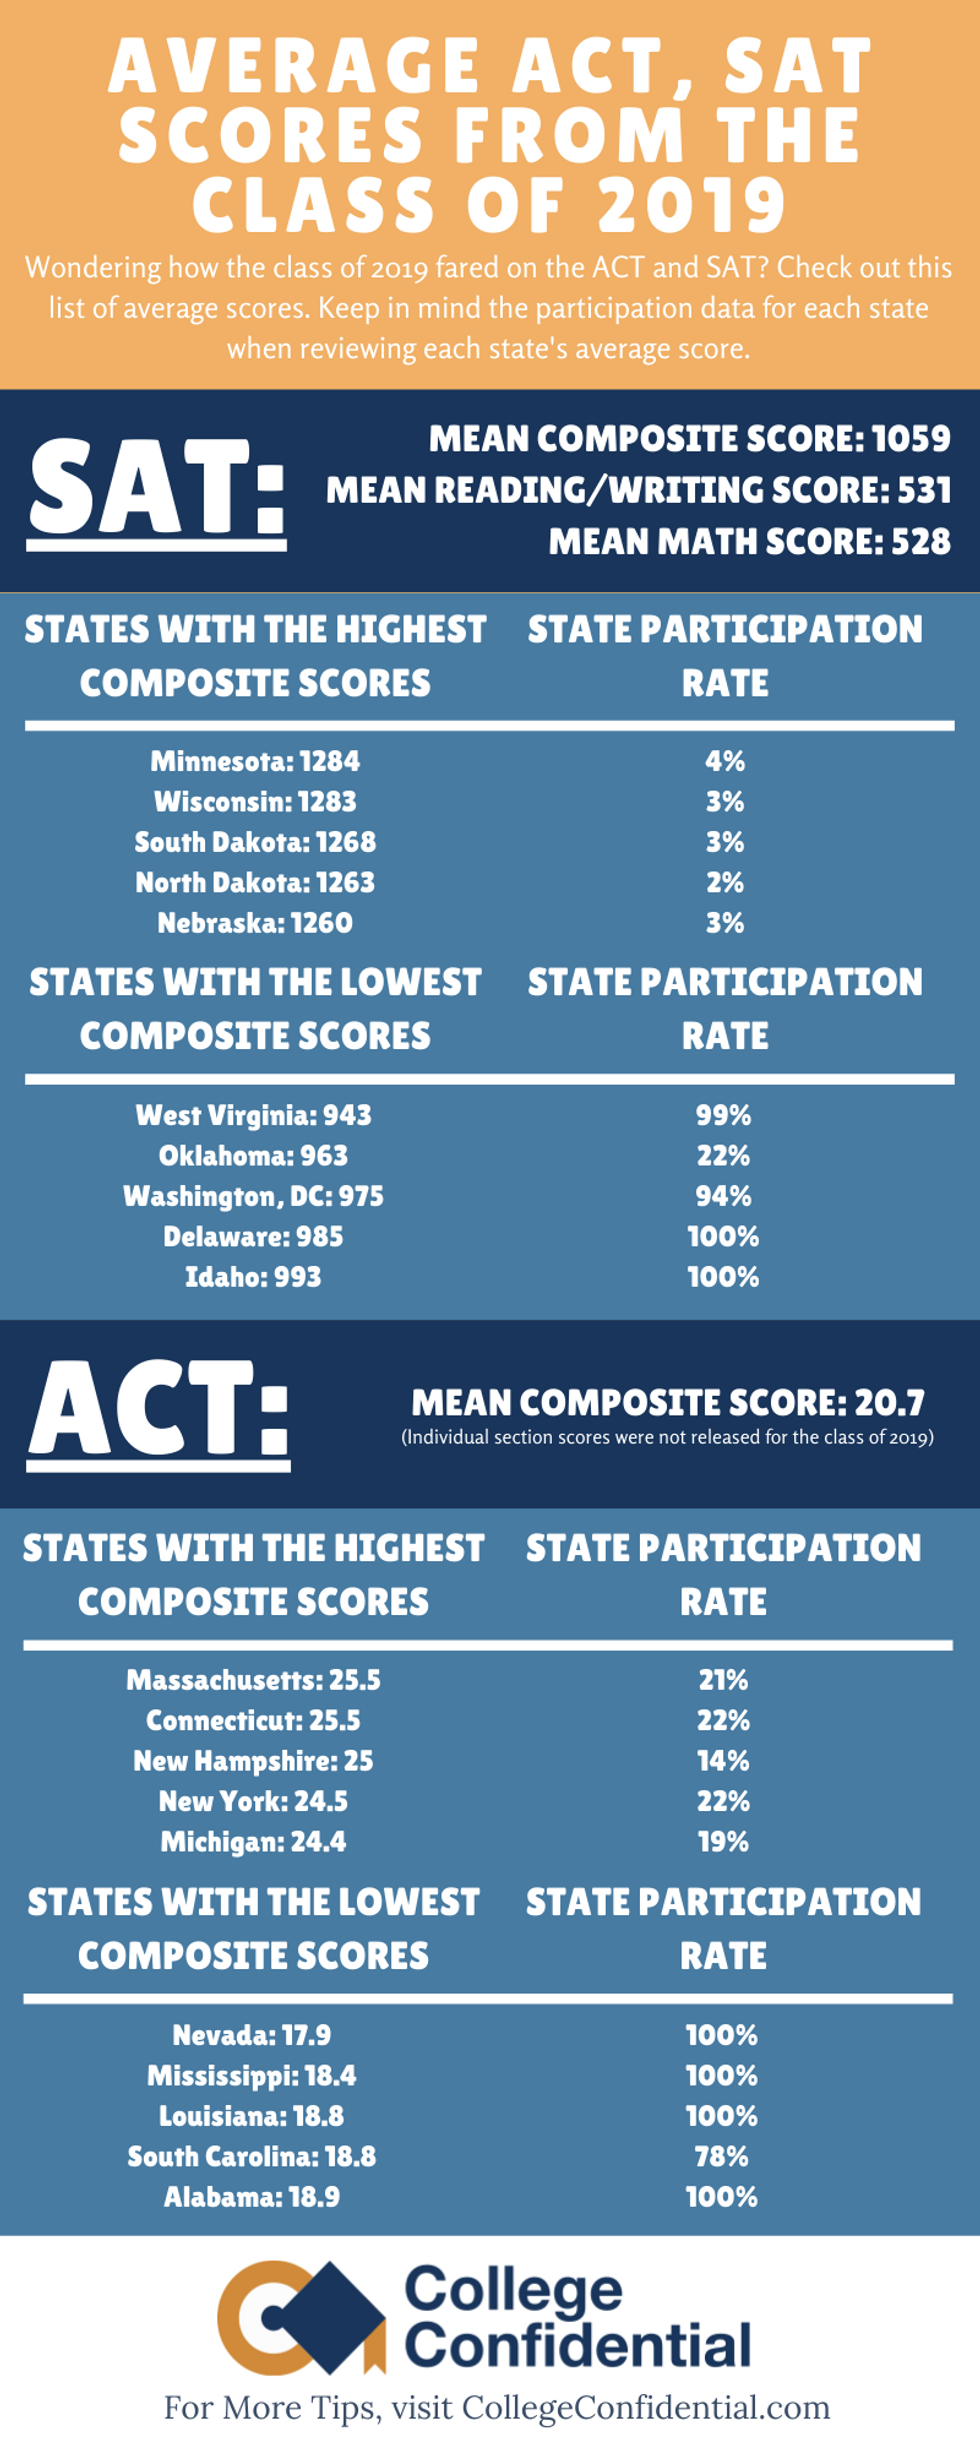 Average ACT, SAT Scores from the class of 2019